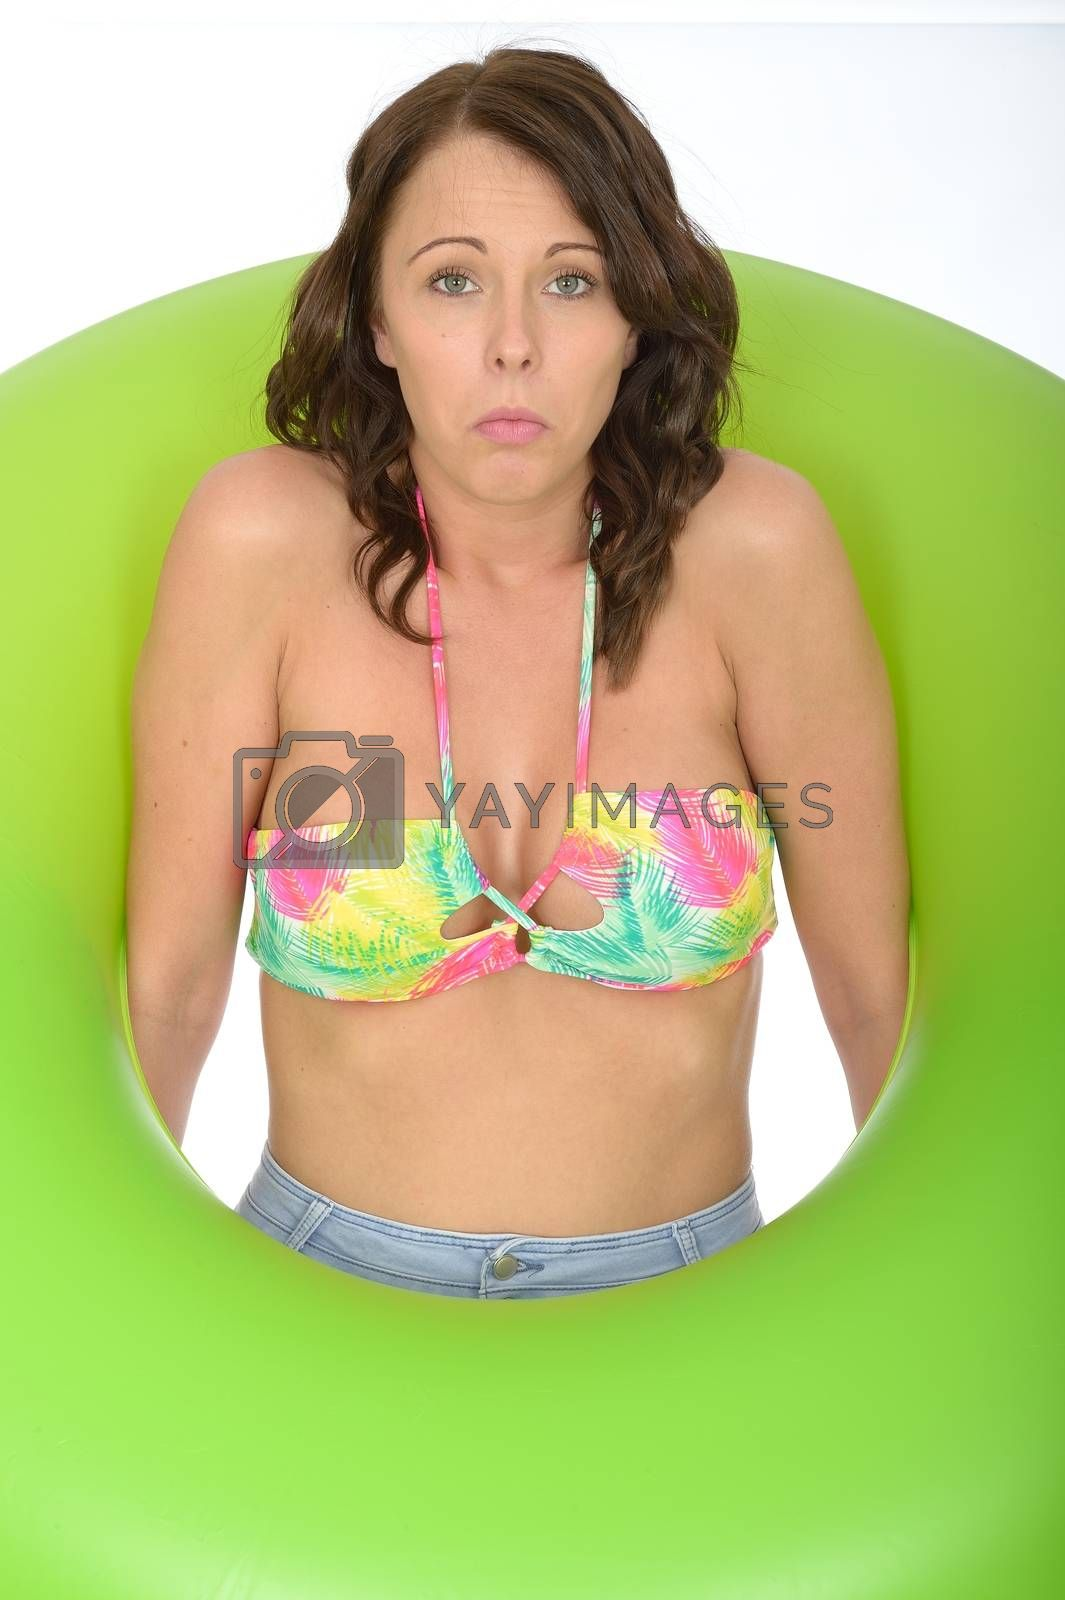 Attractive Unhappy Young Woman Looking Through a Green Rubber Ring